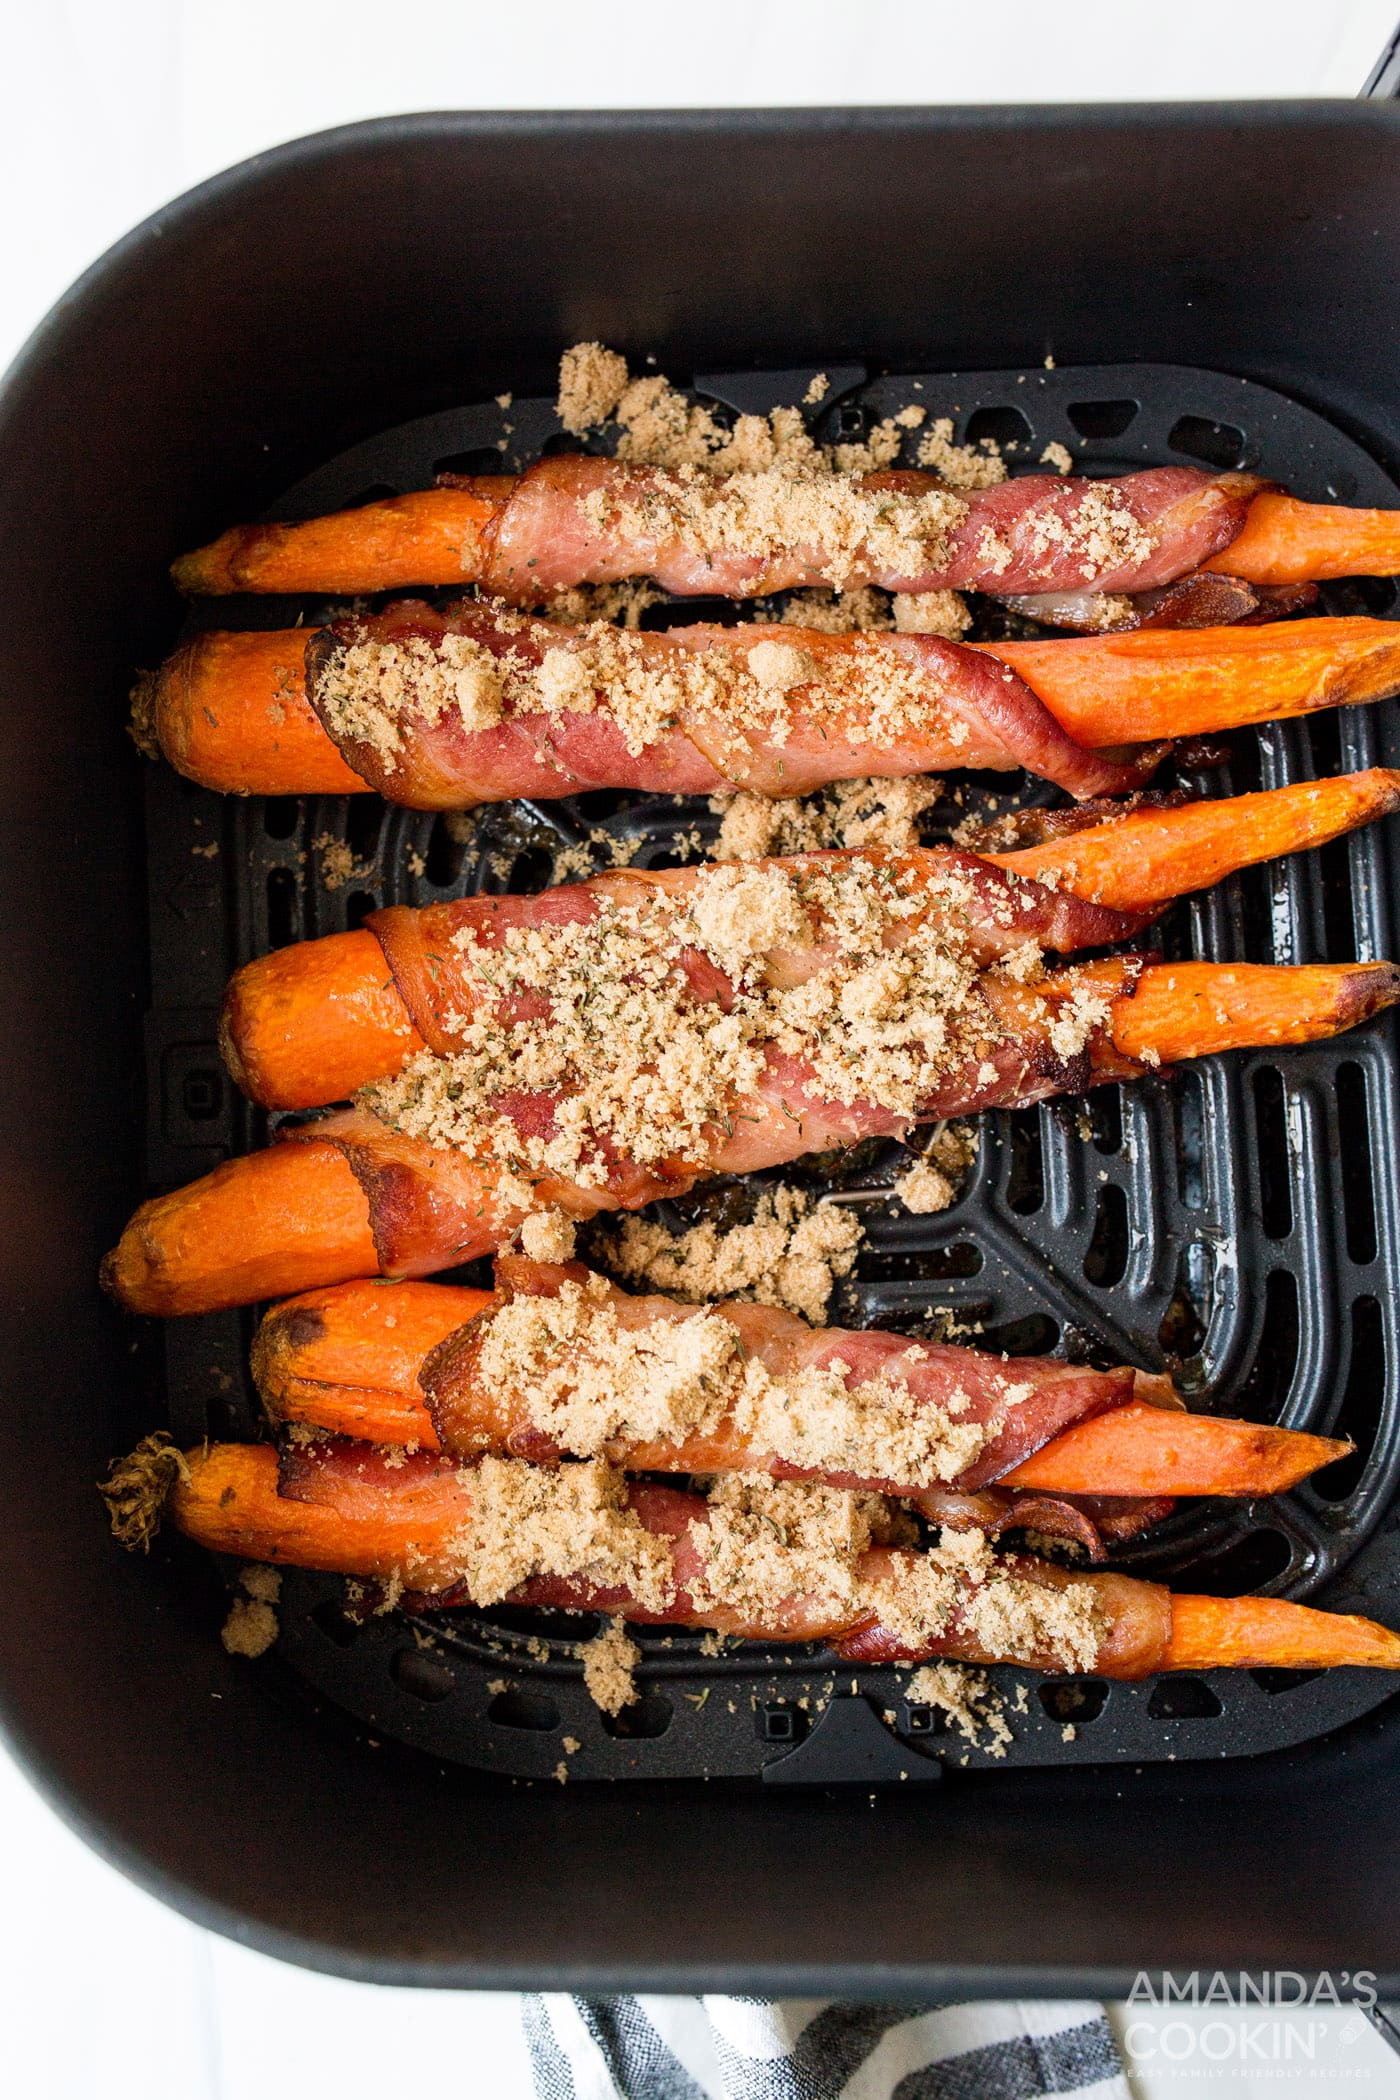 brown sugar sprinkled on bacon wrapped carrots in an air fryer